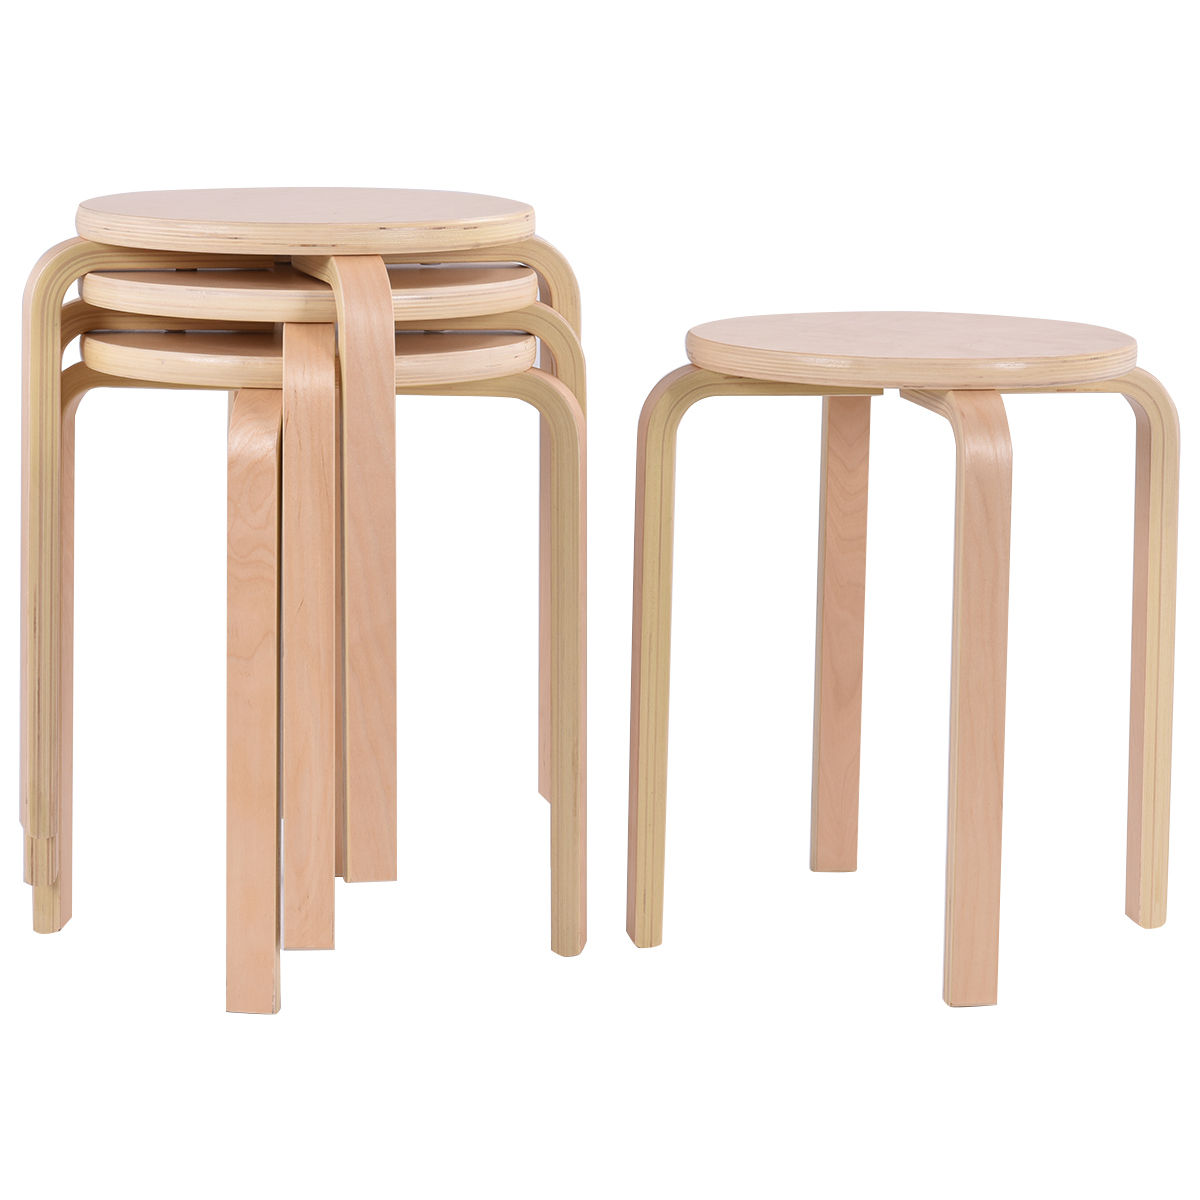 Set of 4 Wood Children Dining Stools HW52441